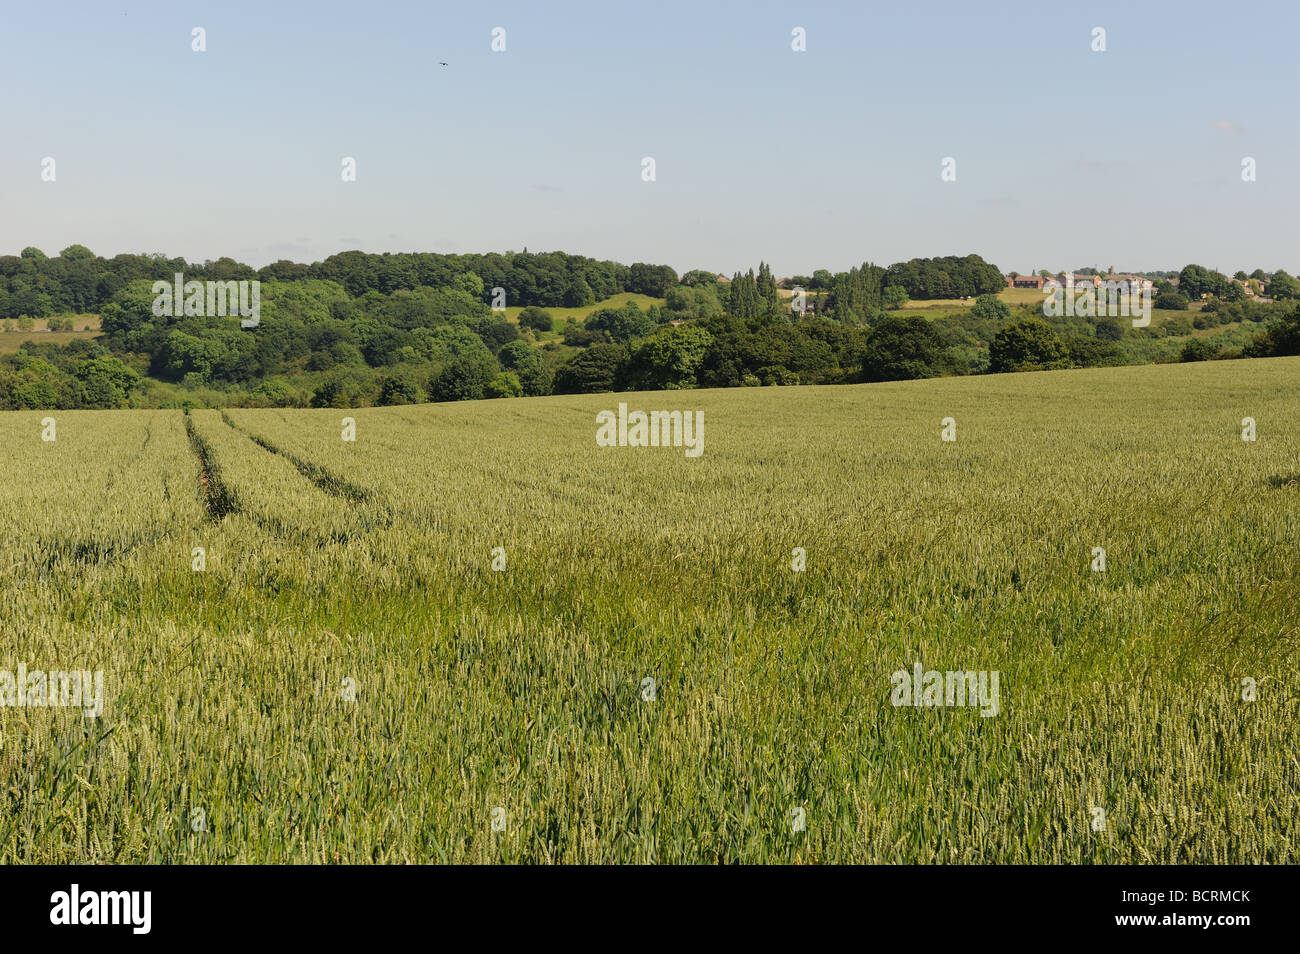 In glorious June sunshine a wheatfield slowly matures - Stock Image